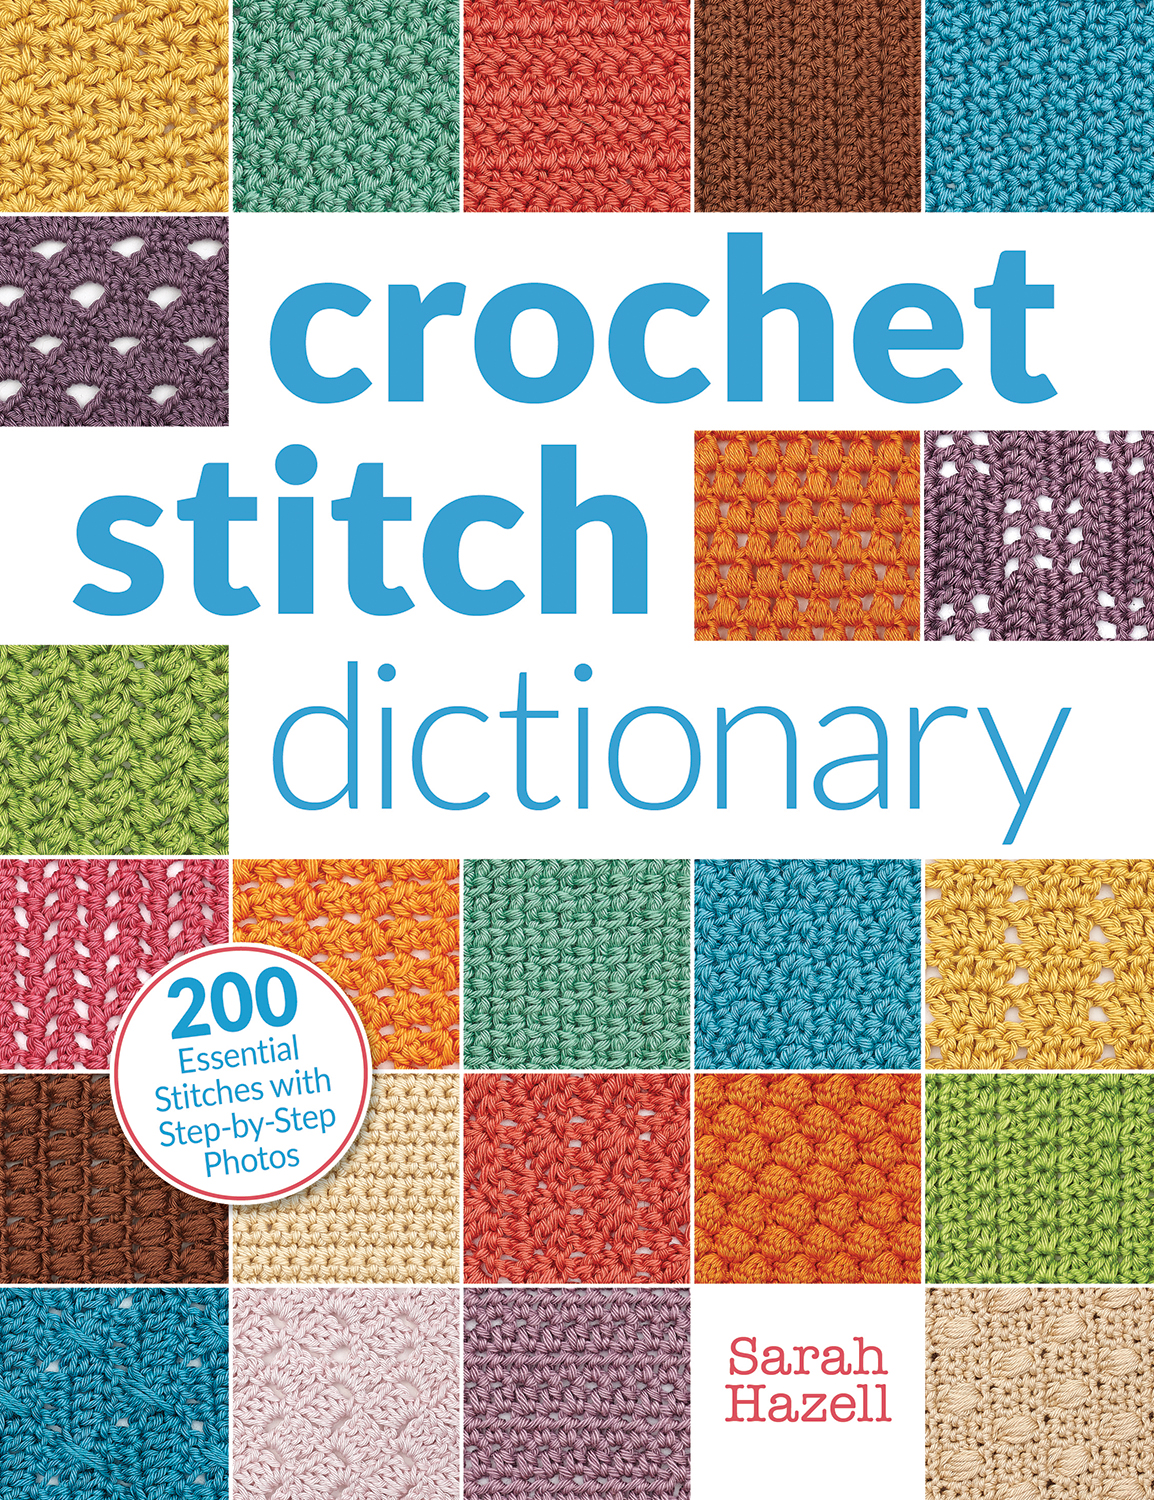 The Crochet Doctor Crochet Stitch Dictionary By Sarah Hazell